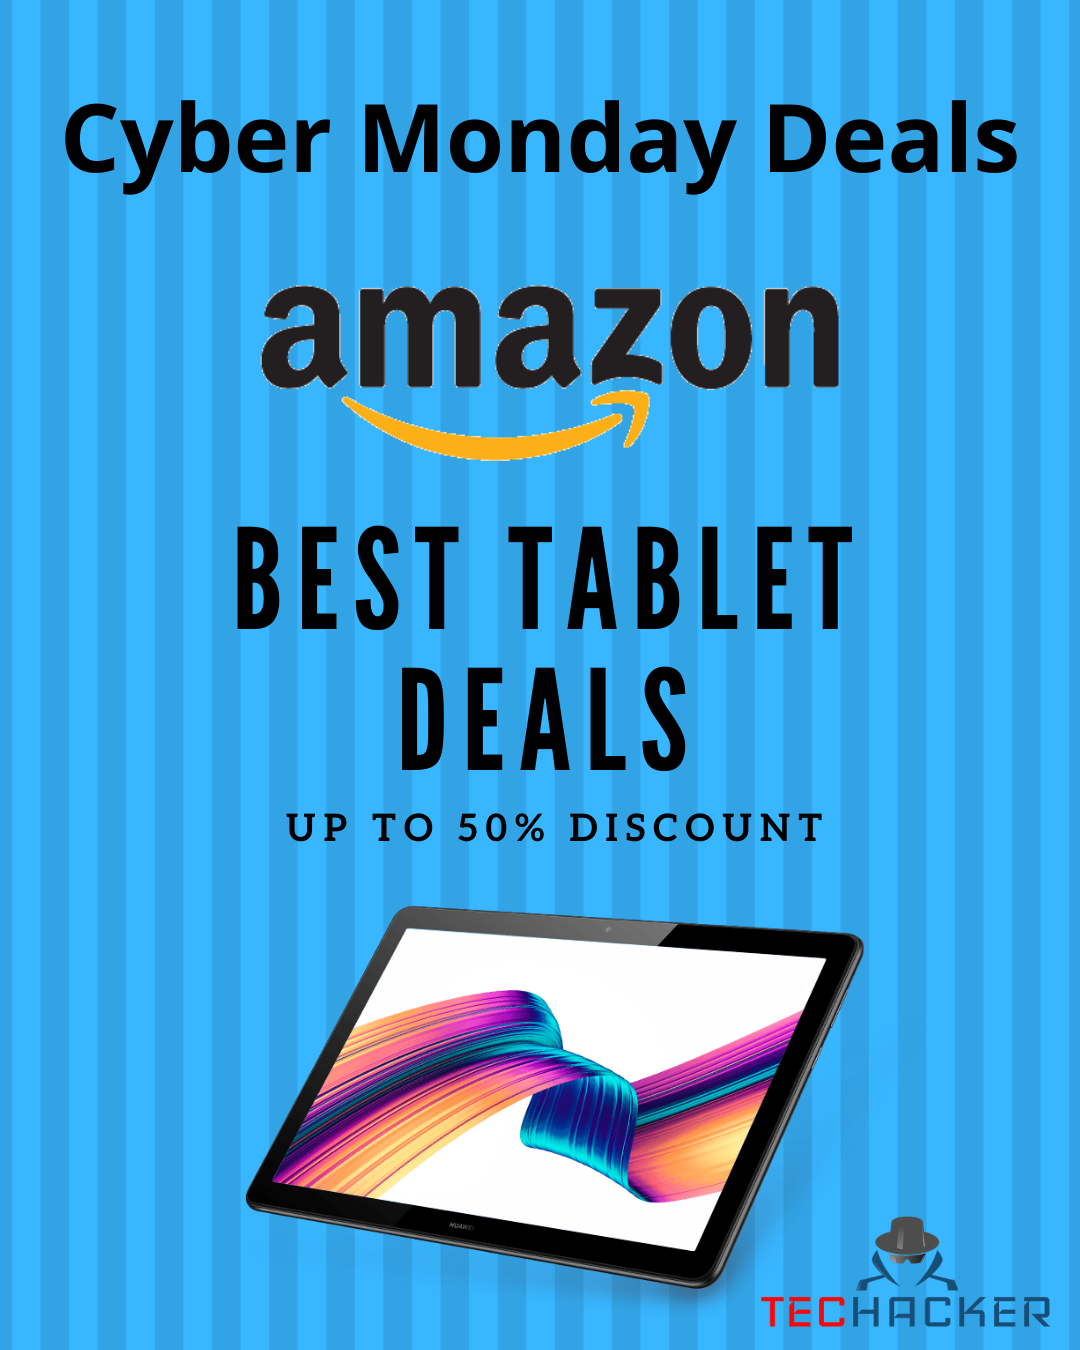 Cyber Monday Tablet Deals Cyber Monday Tablet Sales Here Are Some Of The Great Tablet Deals That Are Live Right Now Tablet Engineering Science Cyber Monday